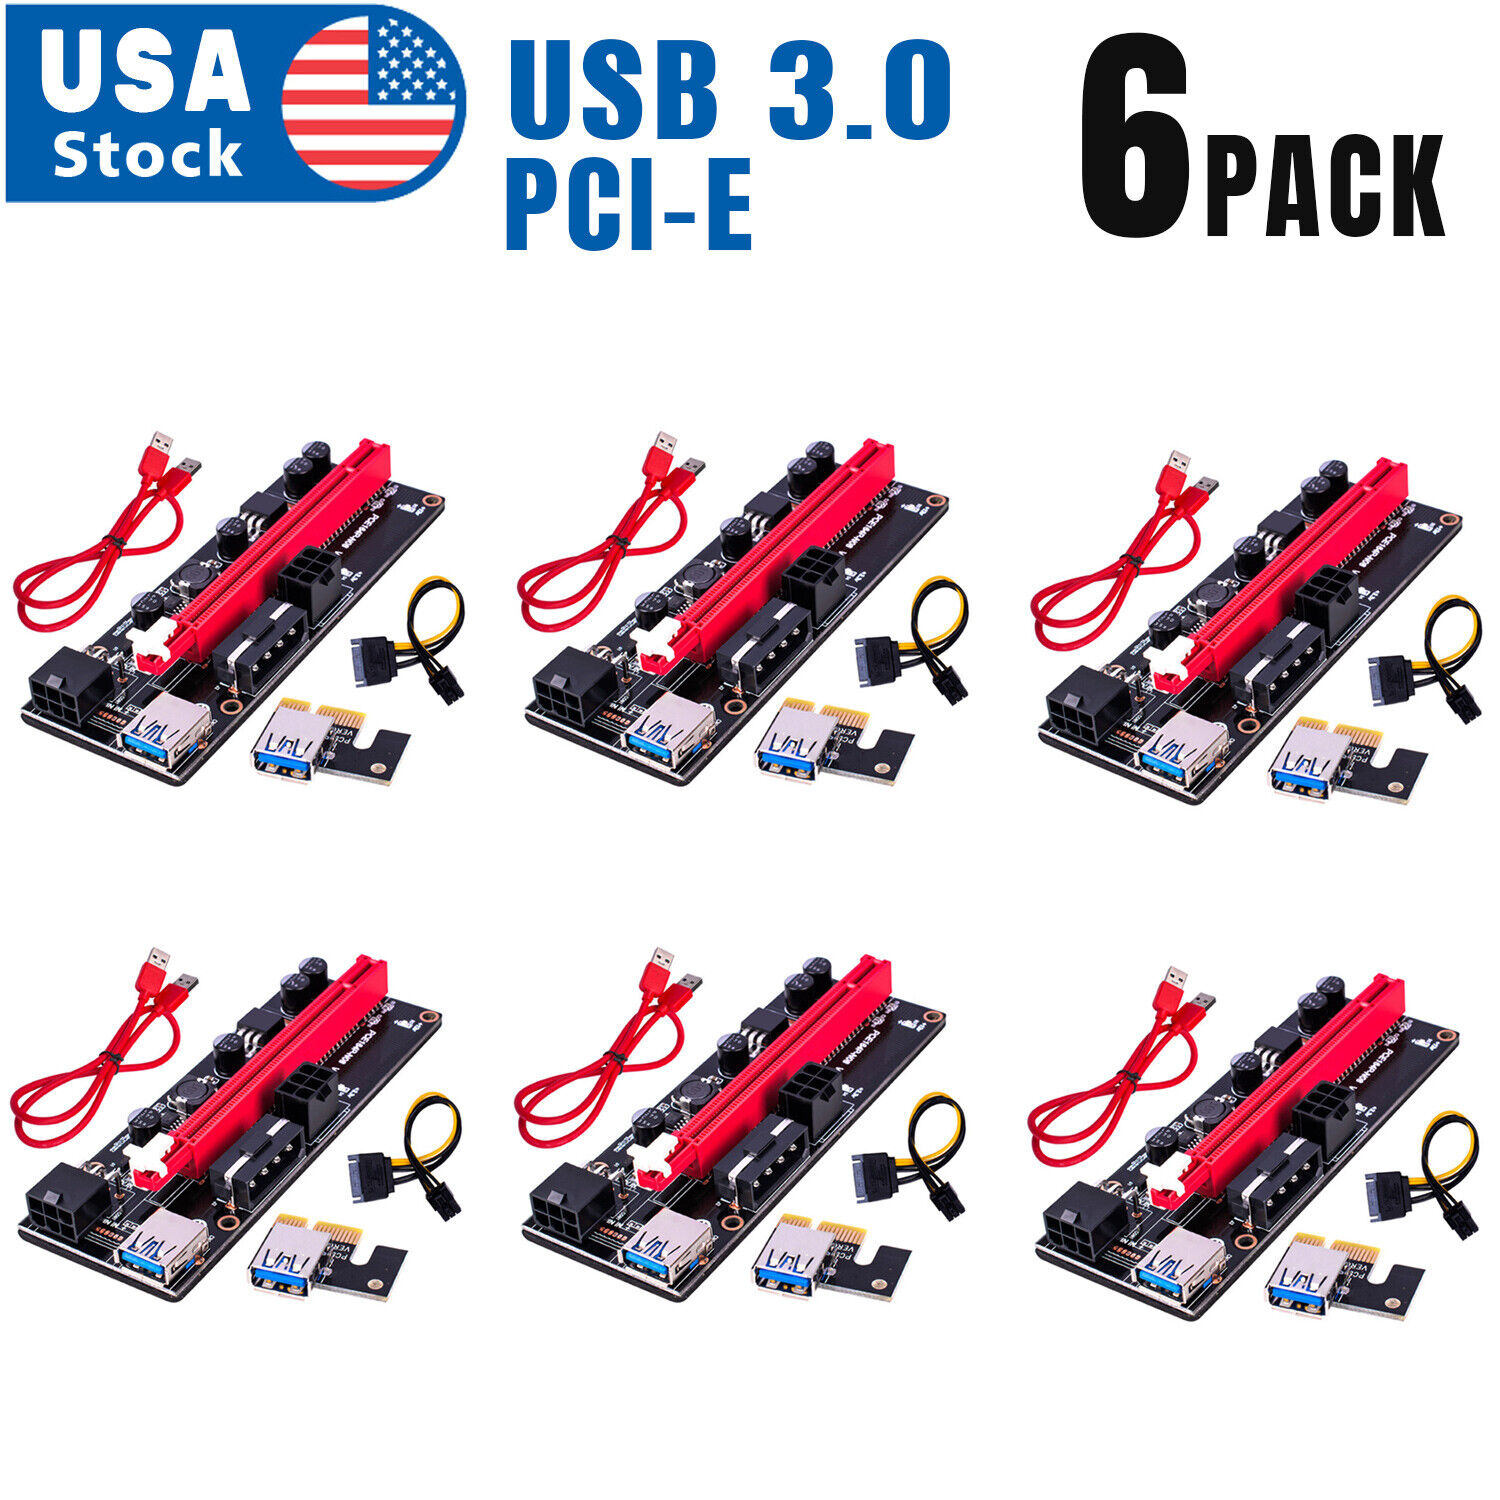 6PACK PCI-E 1x to 16x Powered USB3.0 GPU Riser Extender Adapter Card VER 009s Computer Cables & Connectors